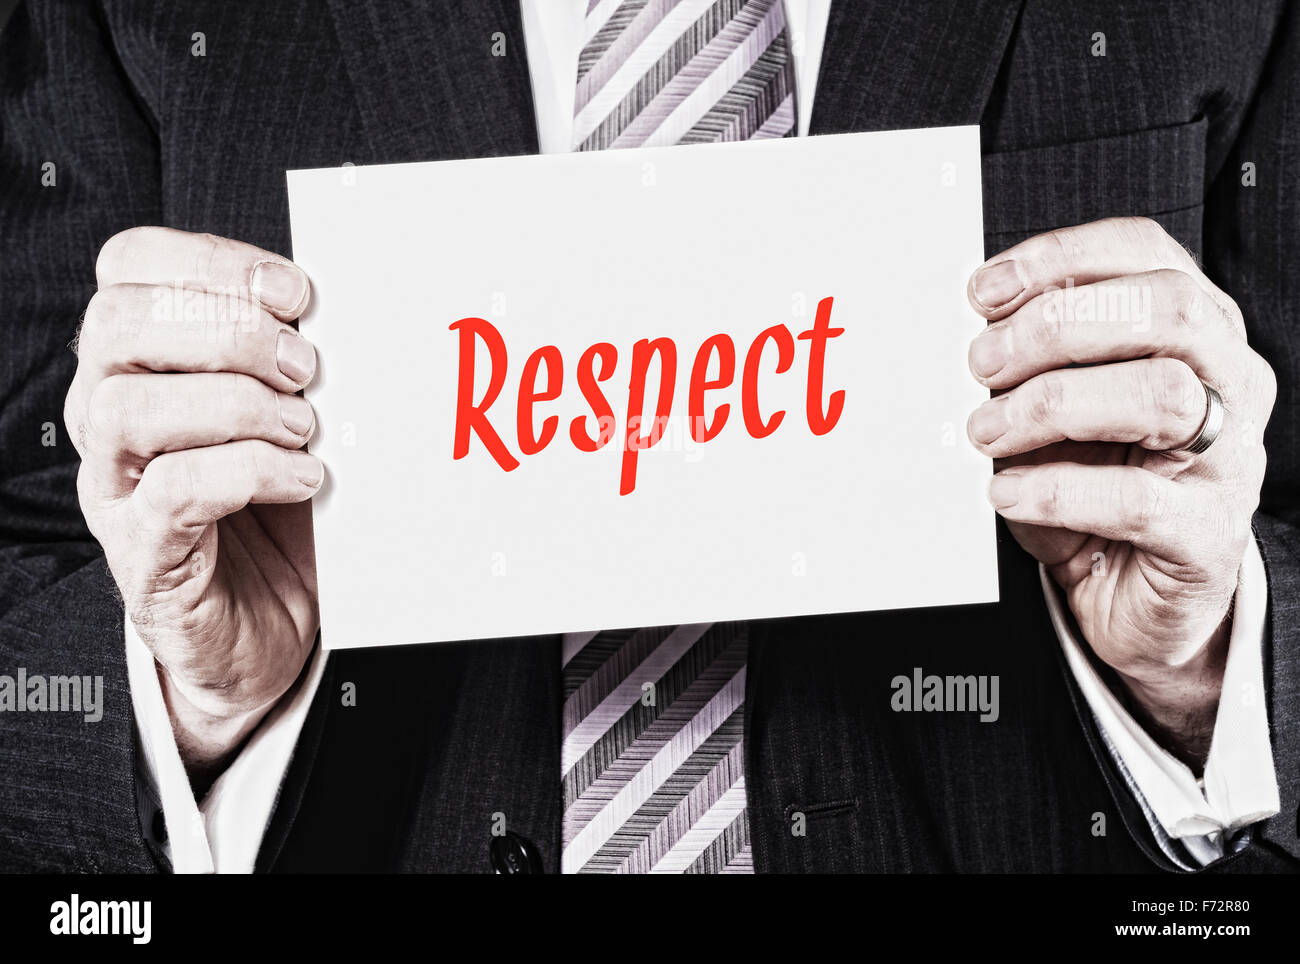 Respect, Induction Training headlines concept. - Stock Image